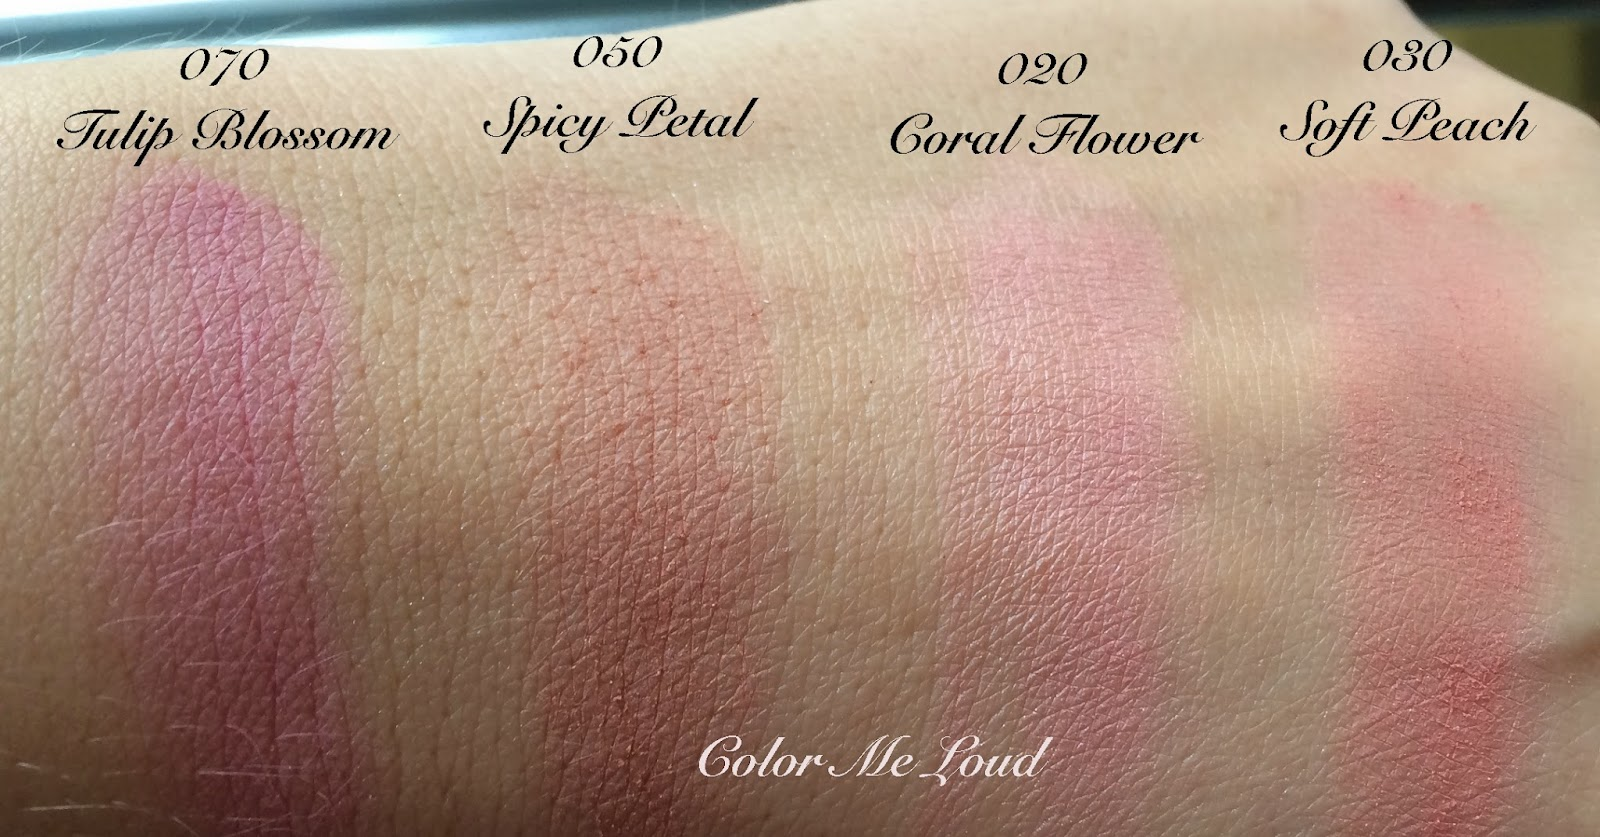 Swatches of Gucci Sheer Blushing Powder Coral Flower, Soft Peach, Spicy Petal and Tulip Blossom